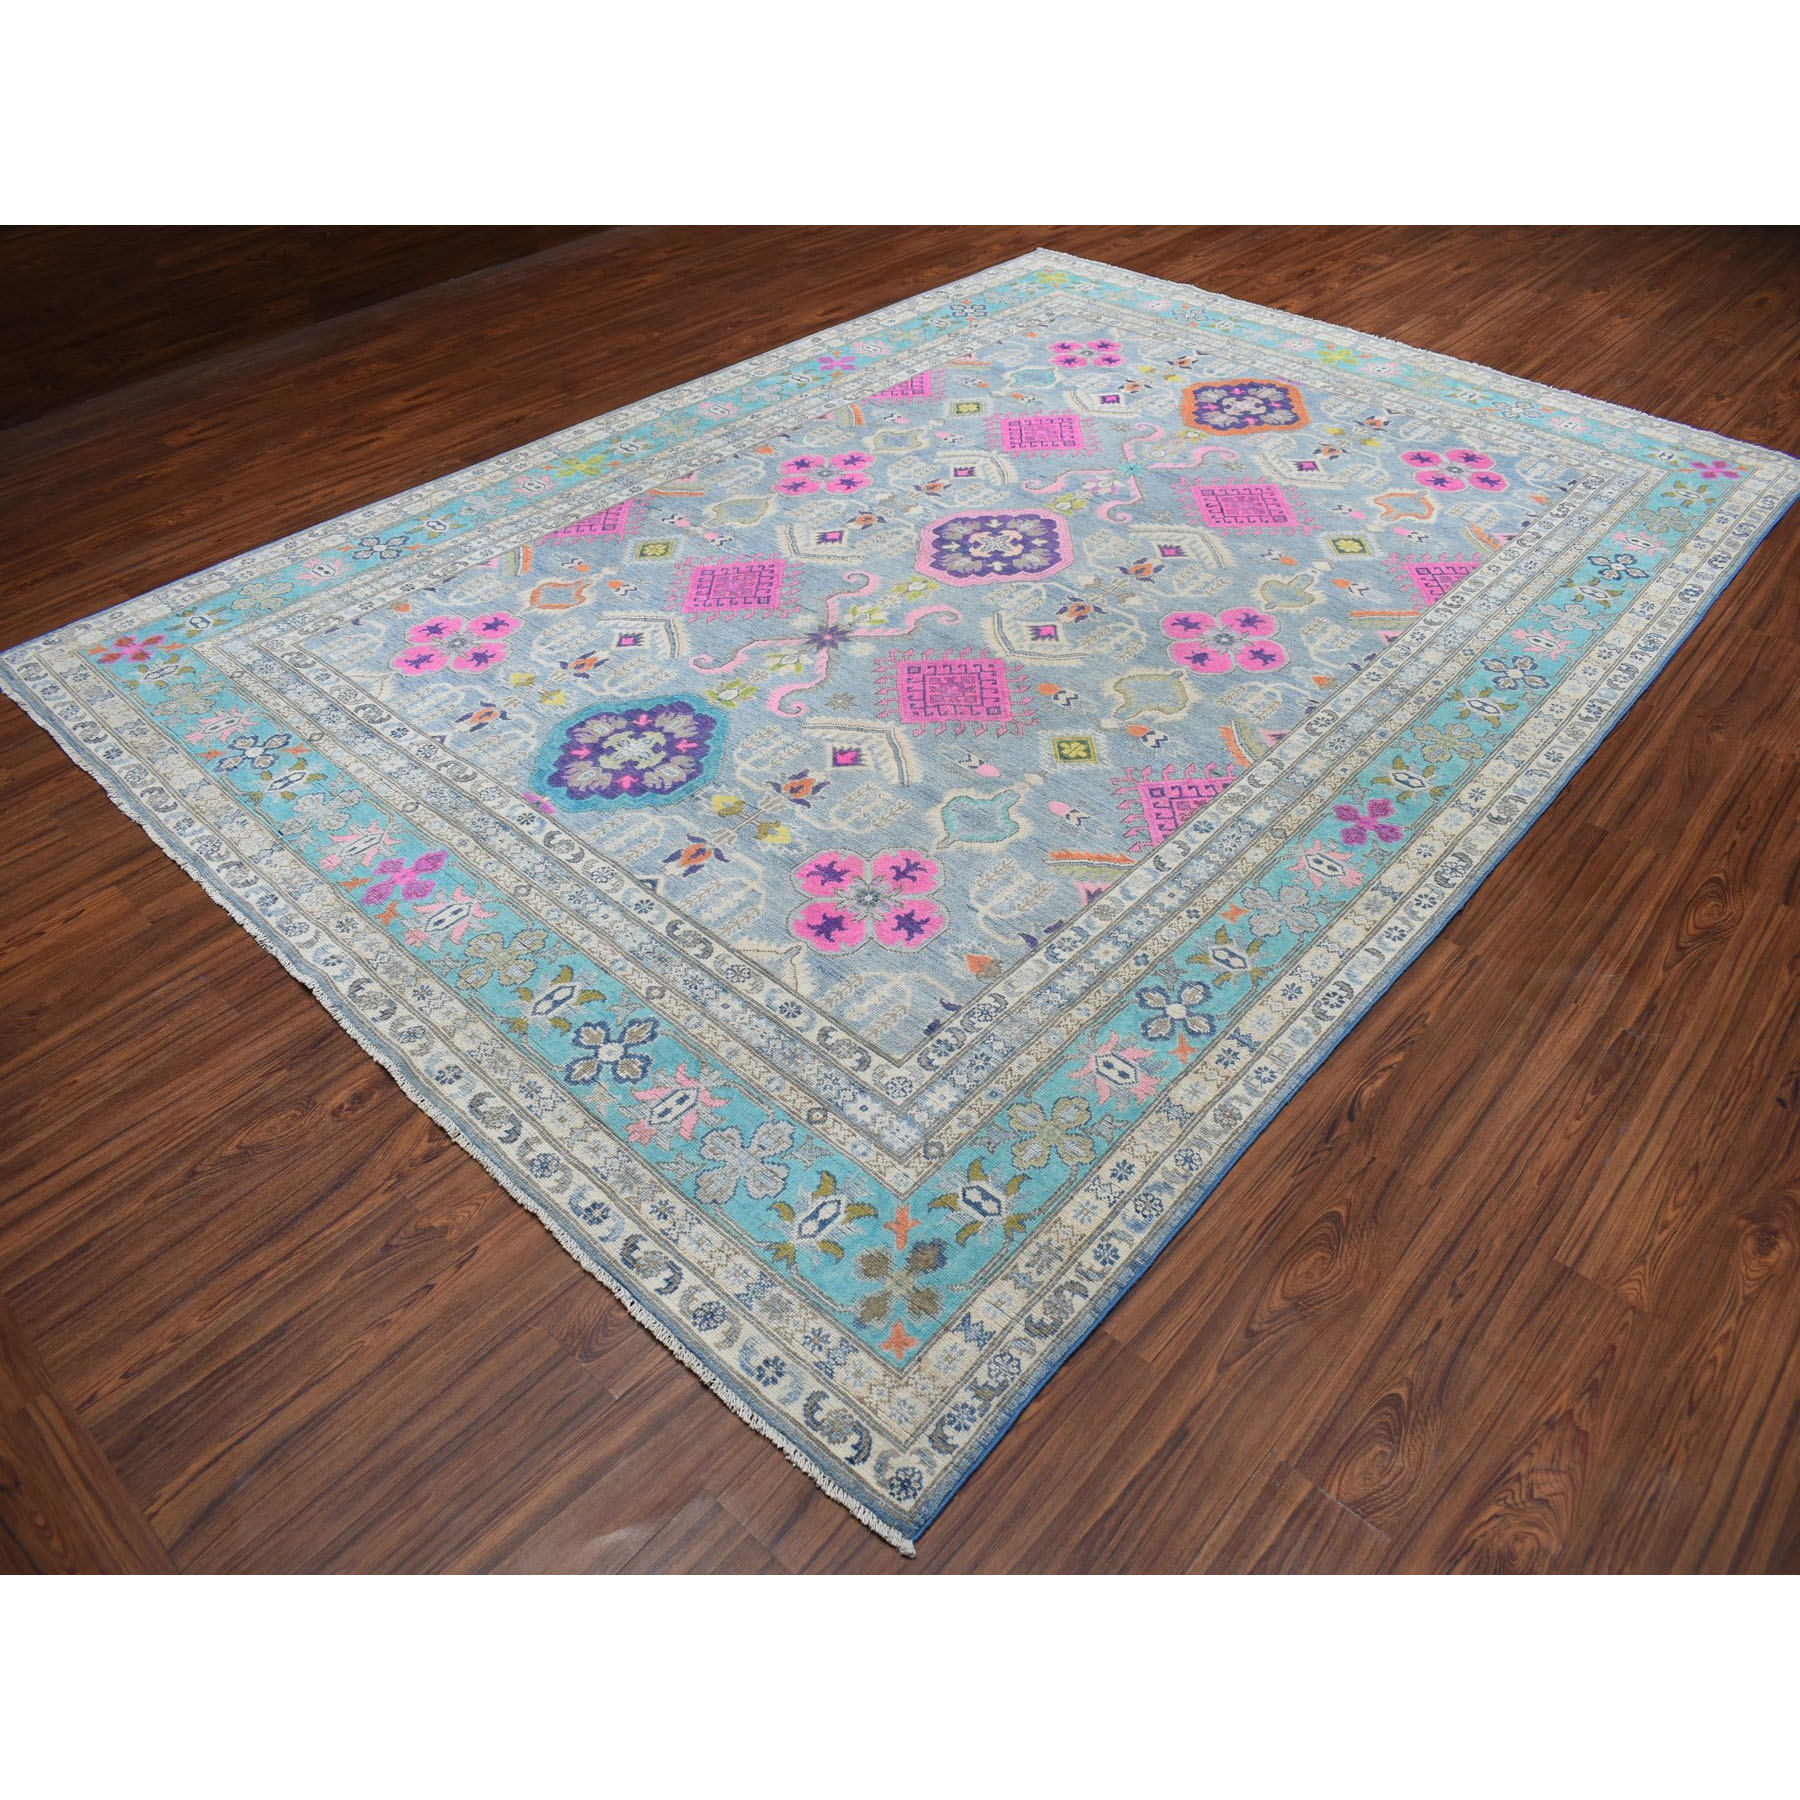 8-9 x12- Colorful Fusion Kazak Geometric Design Pure Wool Hand-Knotted Oriental Rug